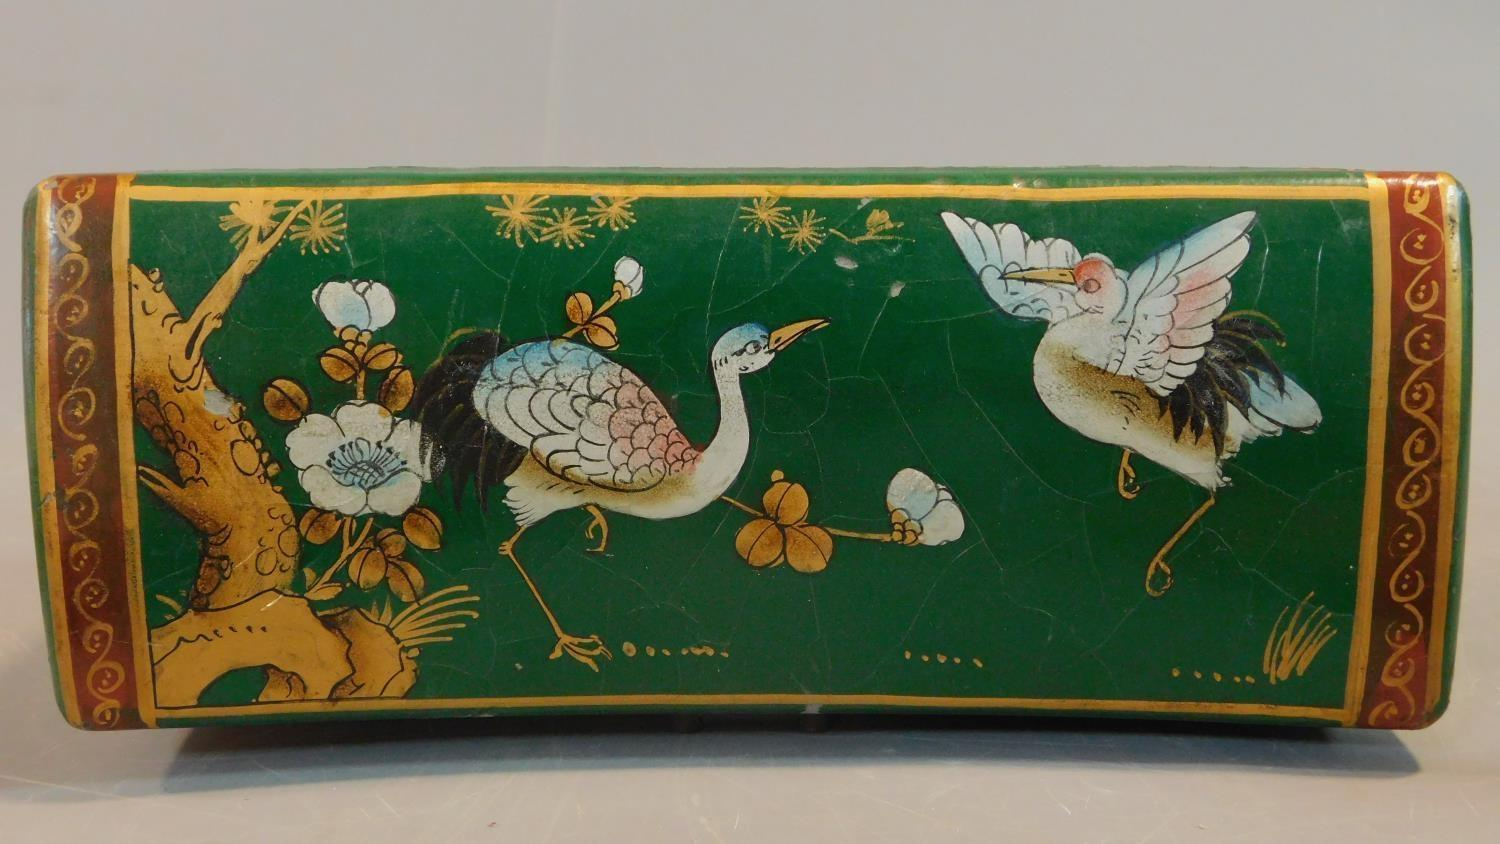 A green painted and lacquered Chinese box with floral motifs. H.12 W.28 D.11.5cm - Image 6 of 9